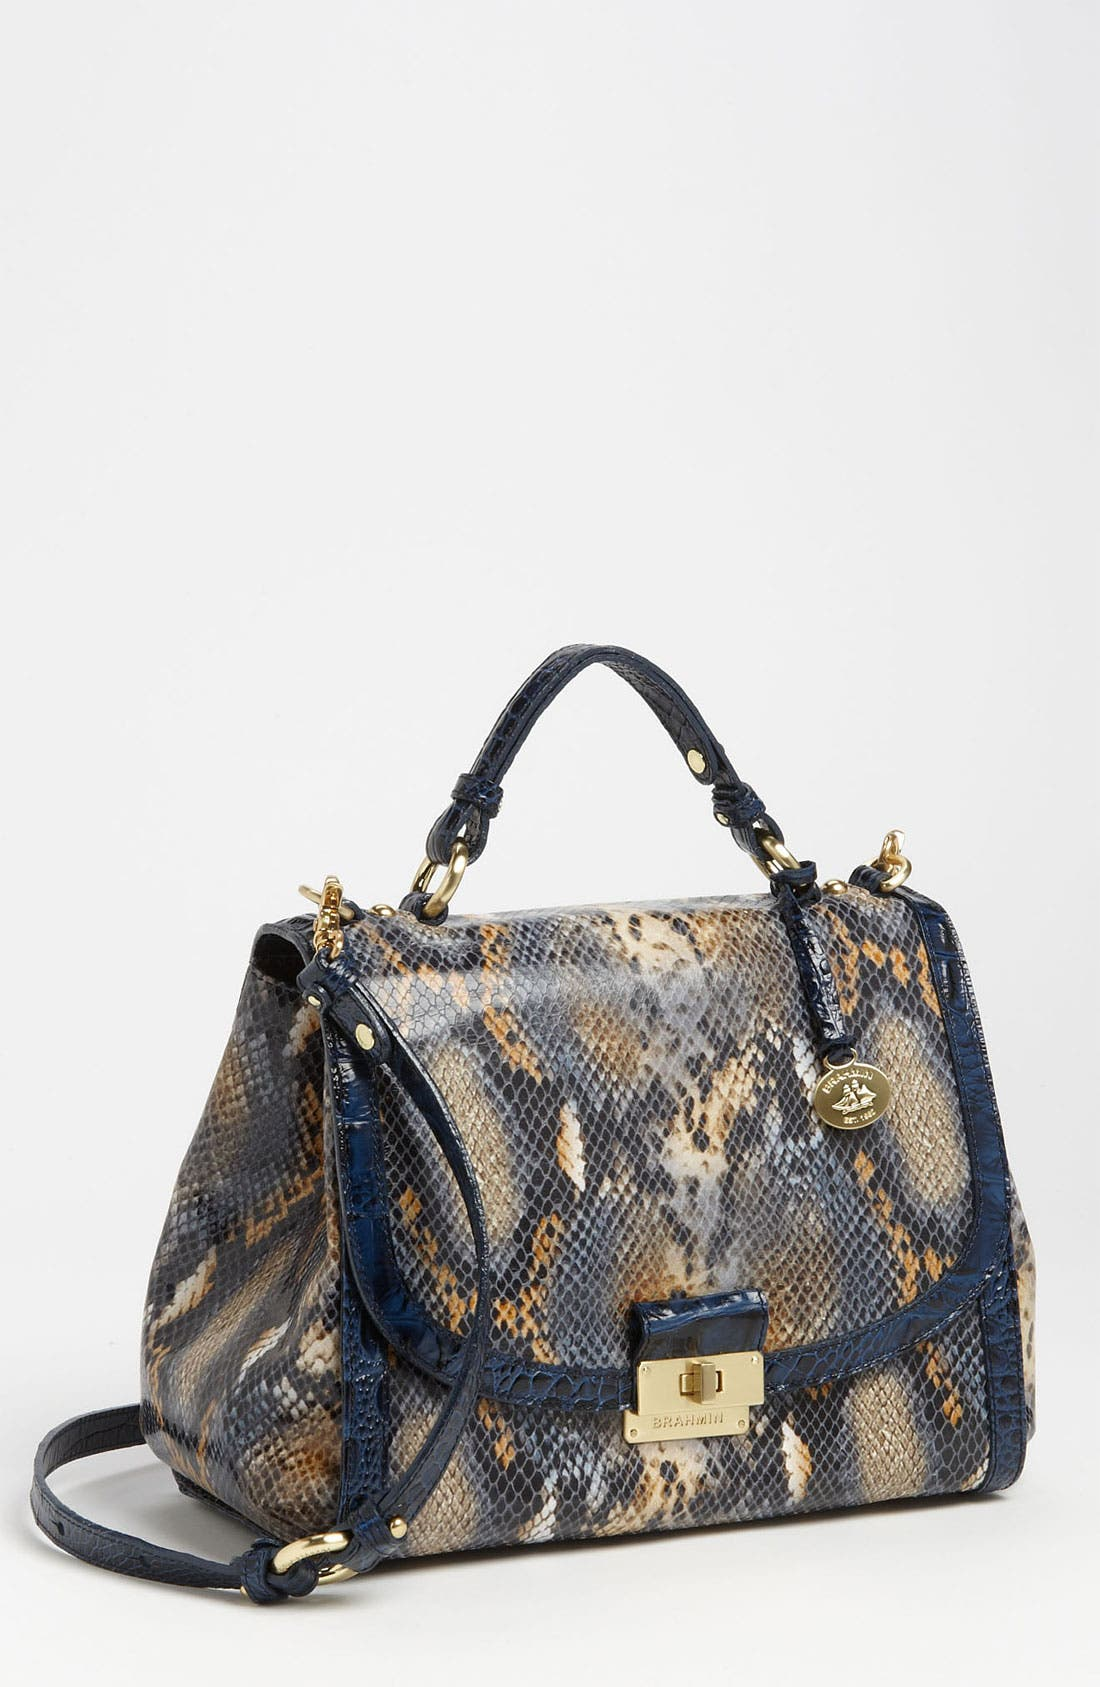 Alternate Image 1 Selected - Brahmin 'Phoebe' Anaconda Embossed Satchel